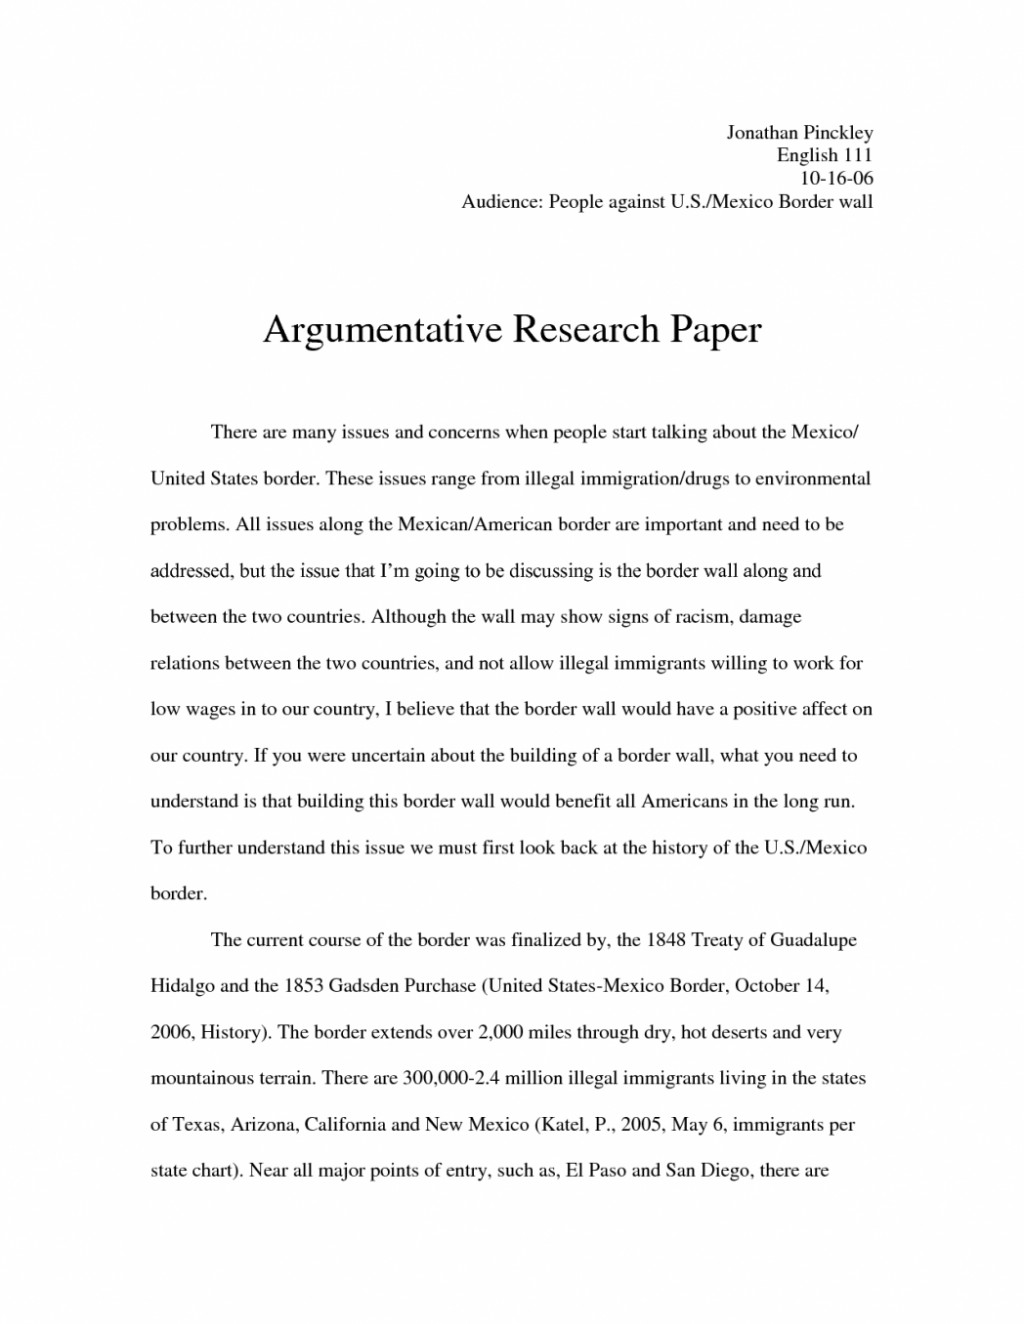 004 Argumentative Essay On Illegal Immigration Argument Research Persuasive Why Is Good Pgune Reform In America Topics Control Pro Thesis Rights 1048x1356 Exceptional Conclusion Large